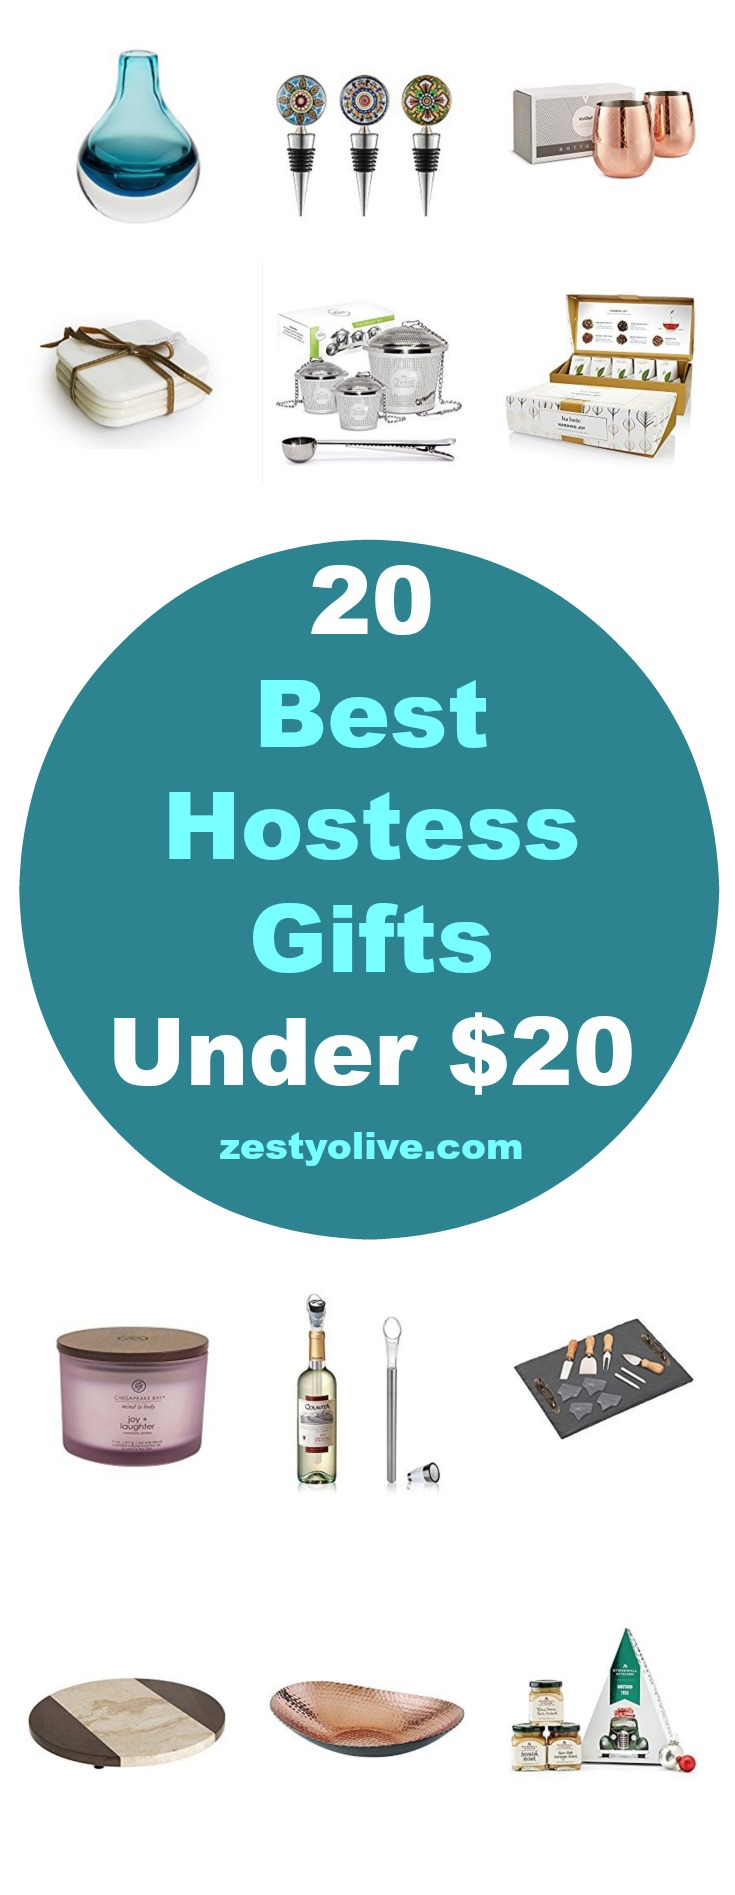 Searching for a last minute hostess gift? Here are 20 Best Hostess Gifts Under $20 that will delight your recipient.